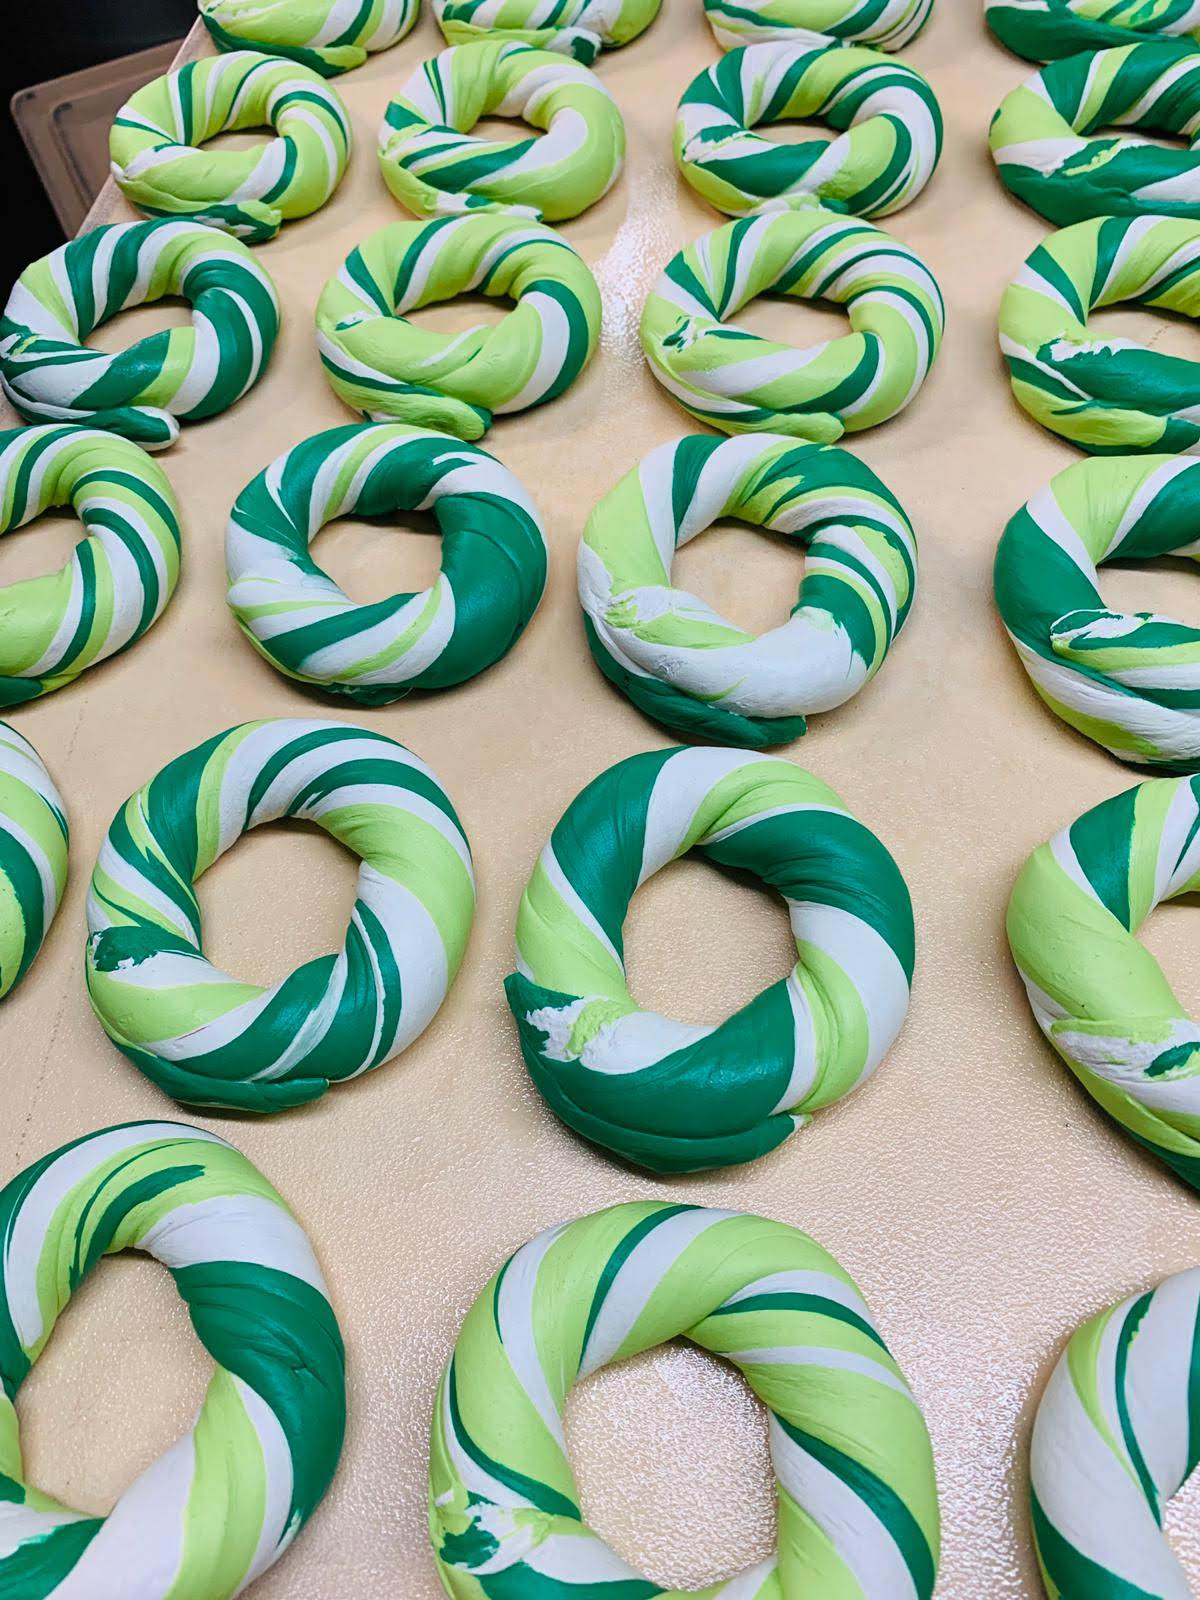 green and white bagel design